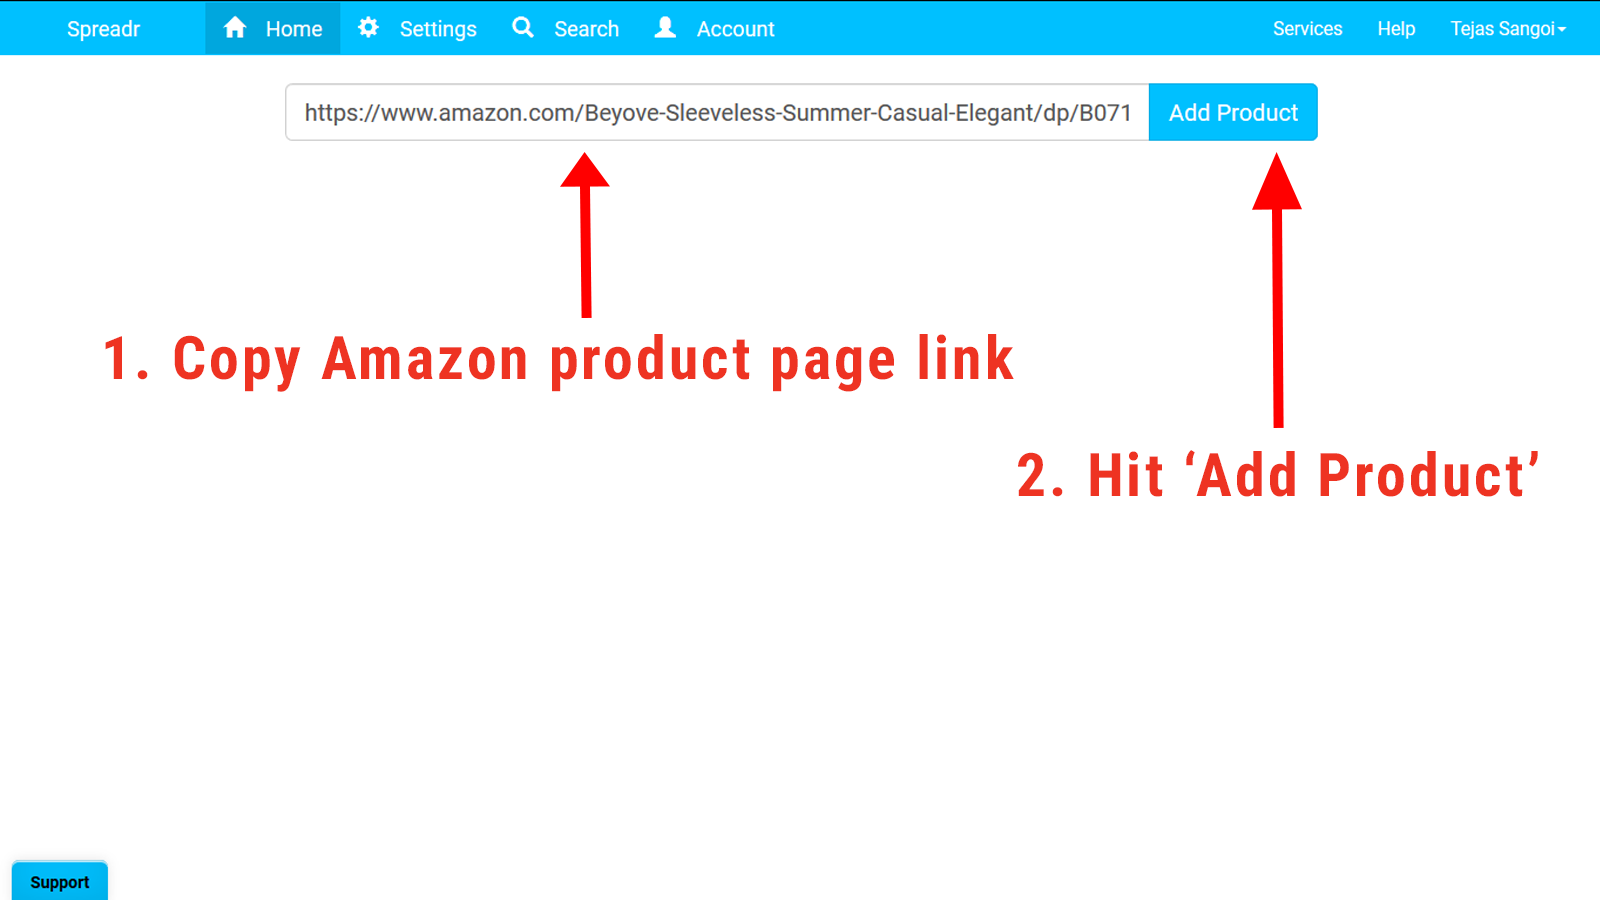 Copy Amazon product page link